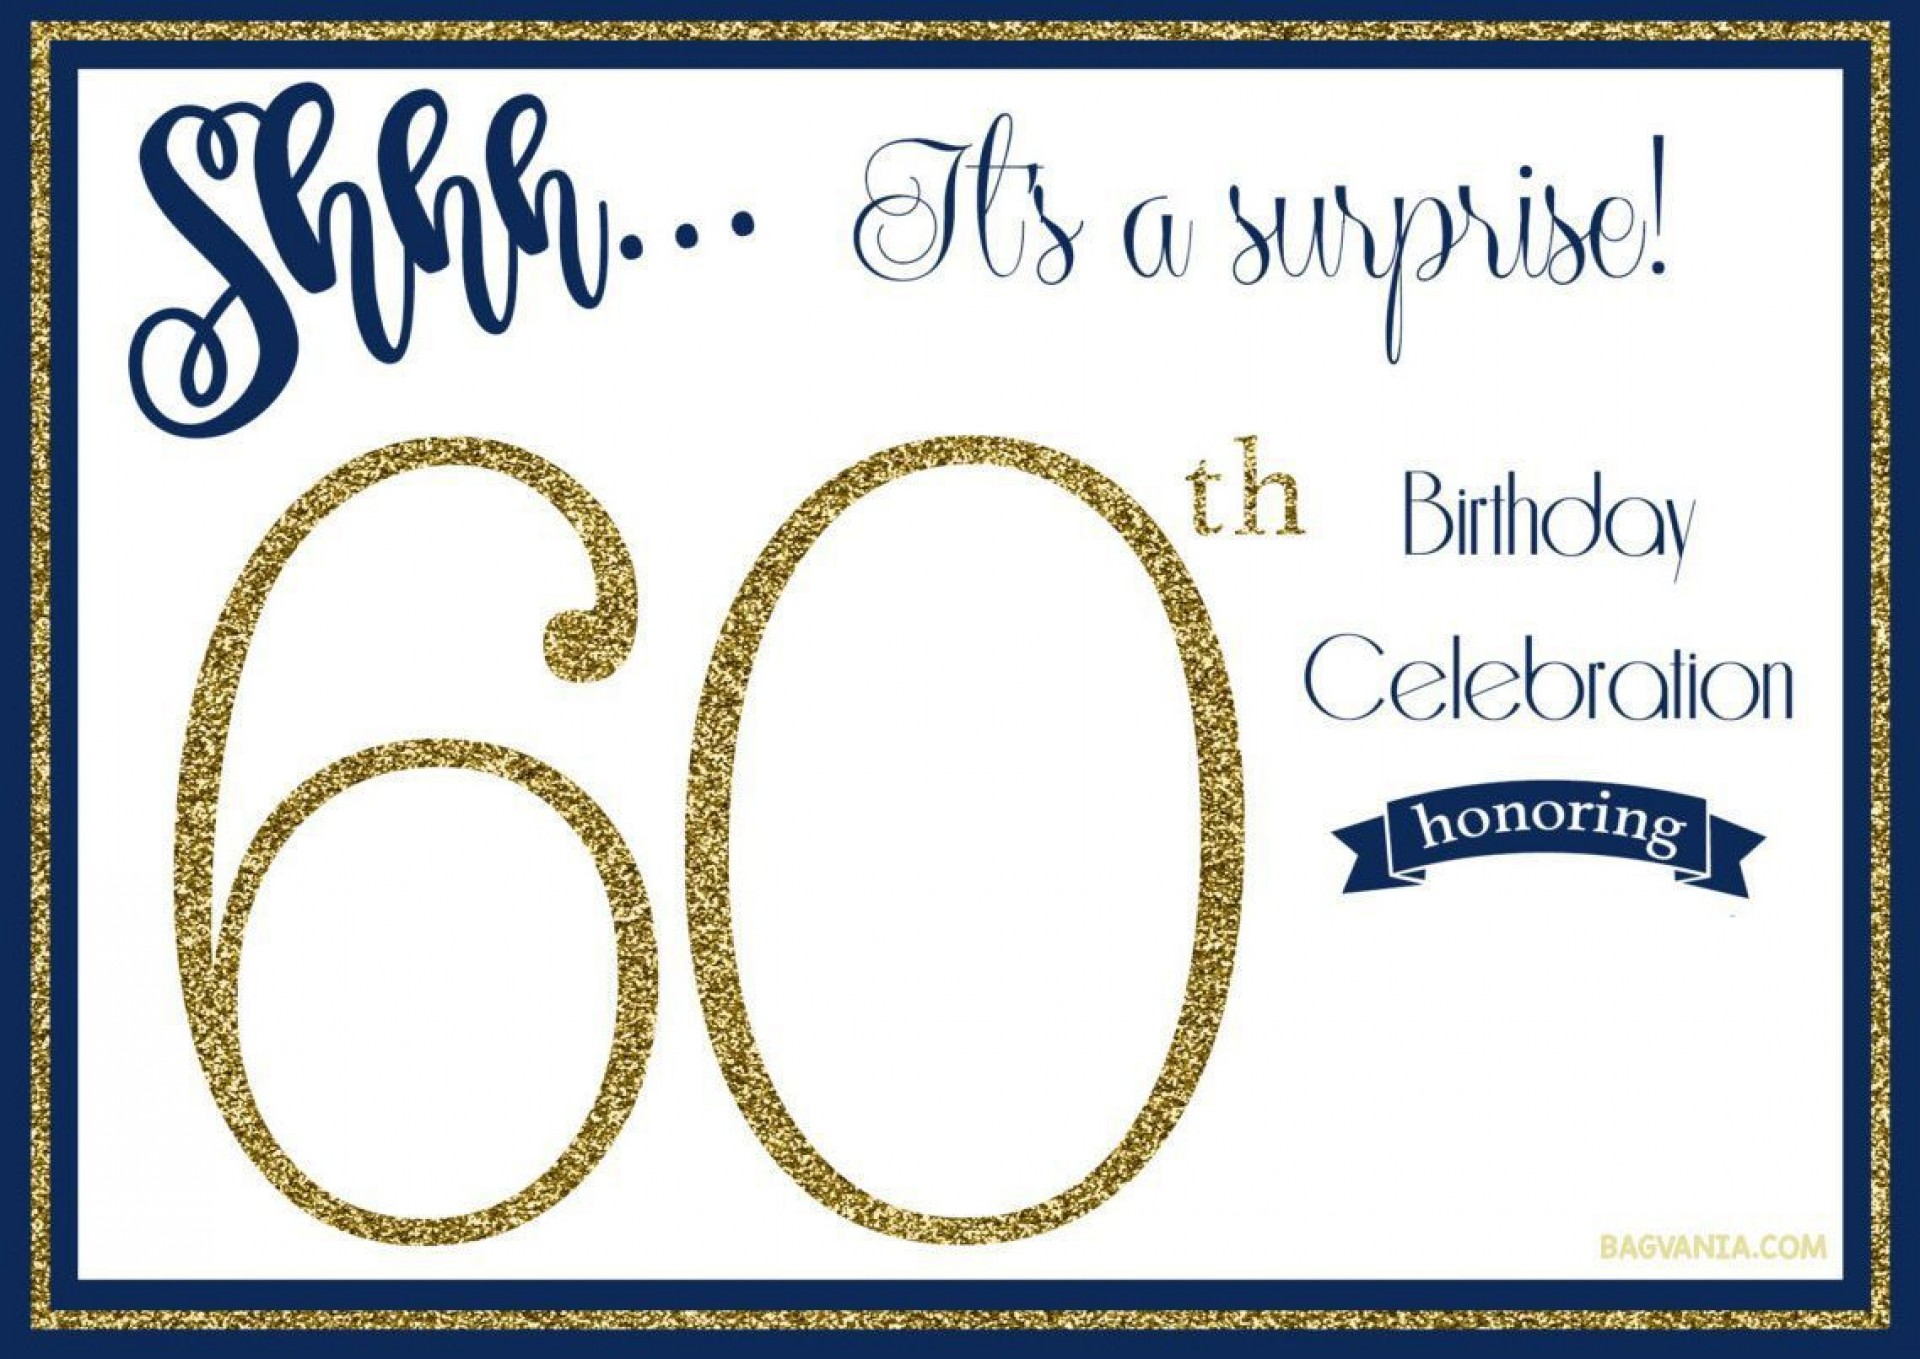 000 Shocking 60 Birthday Invite Template Highest Clarity  Templates 60th Printable Free1920